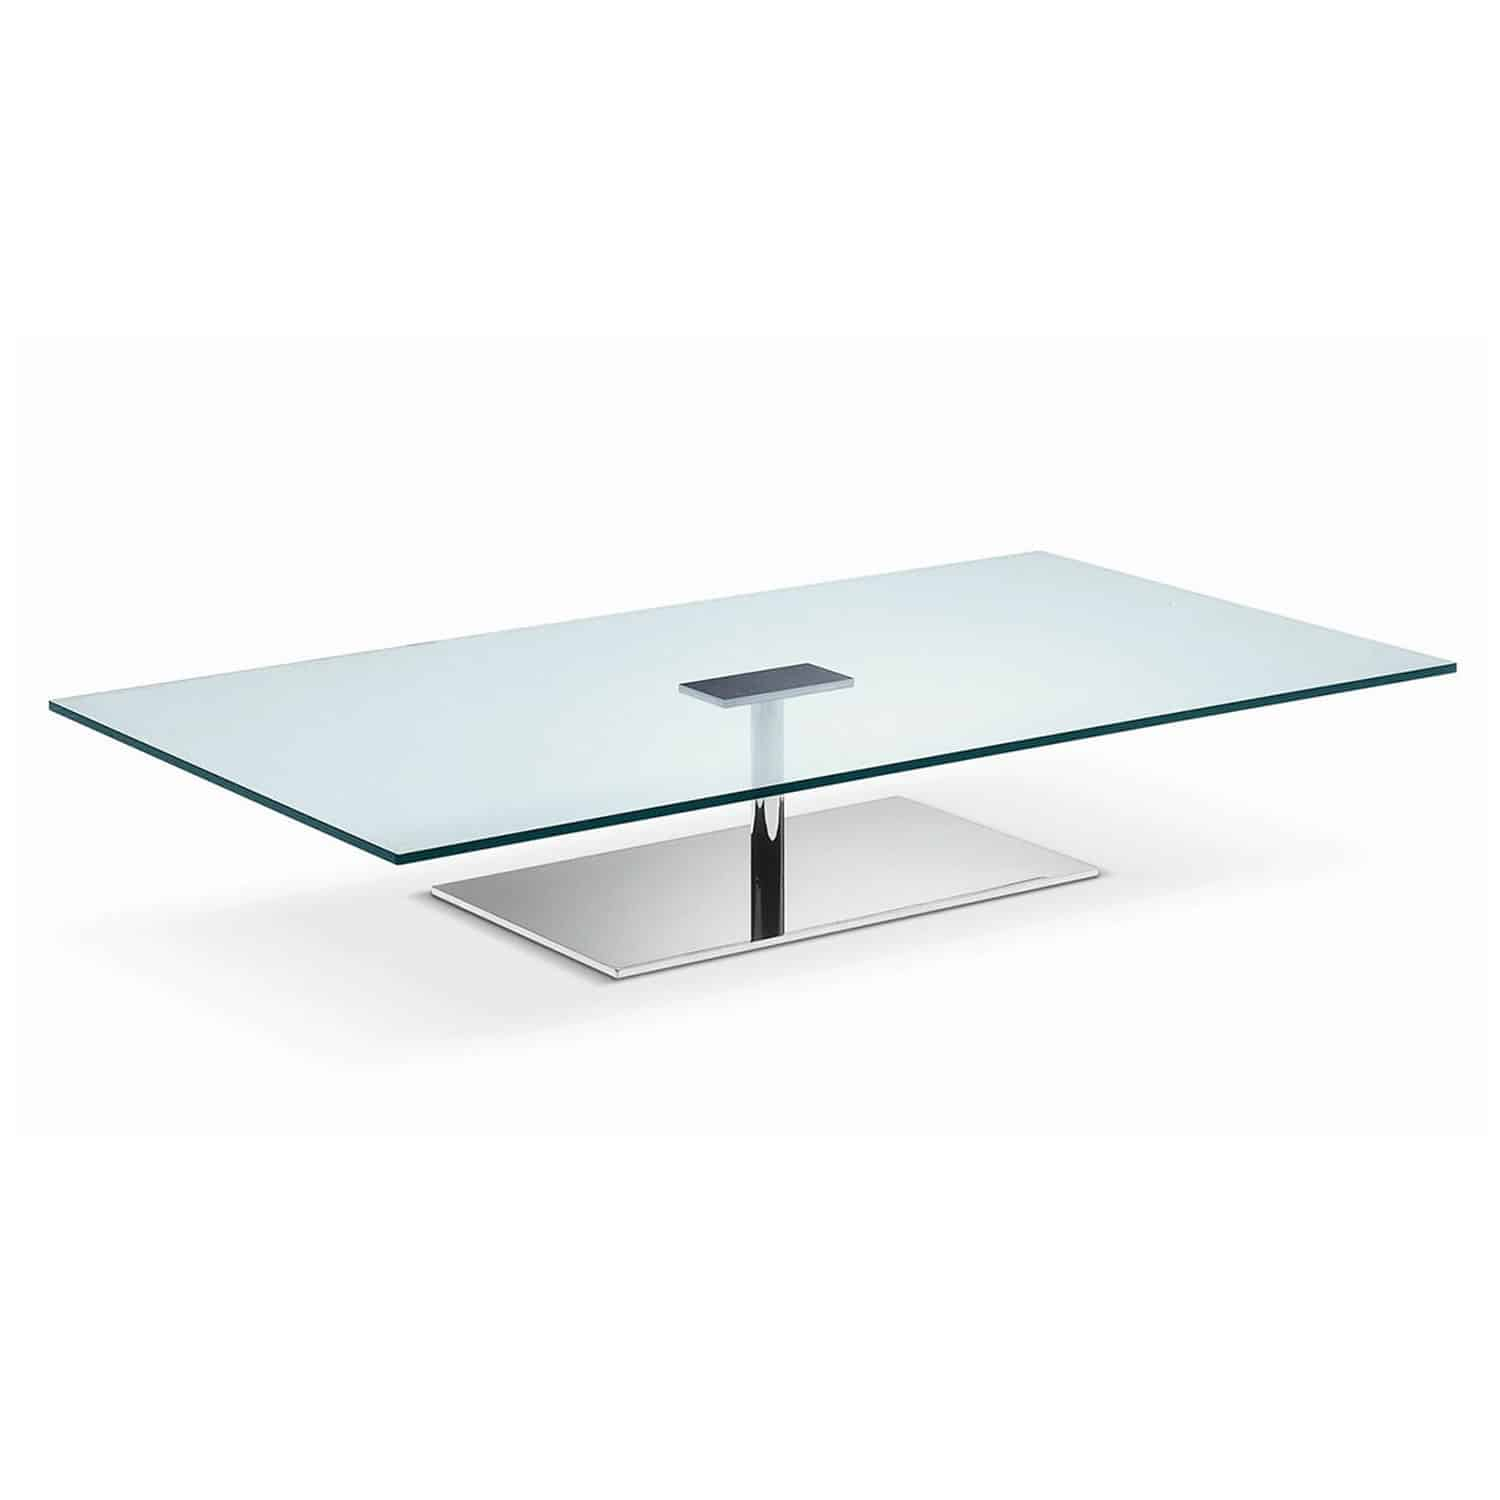 Farniente rectangular glass and metal coffee table by tonelli klarity glass furniture Metal glass top coffee table